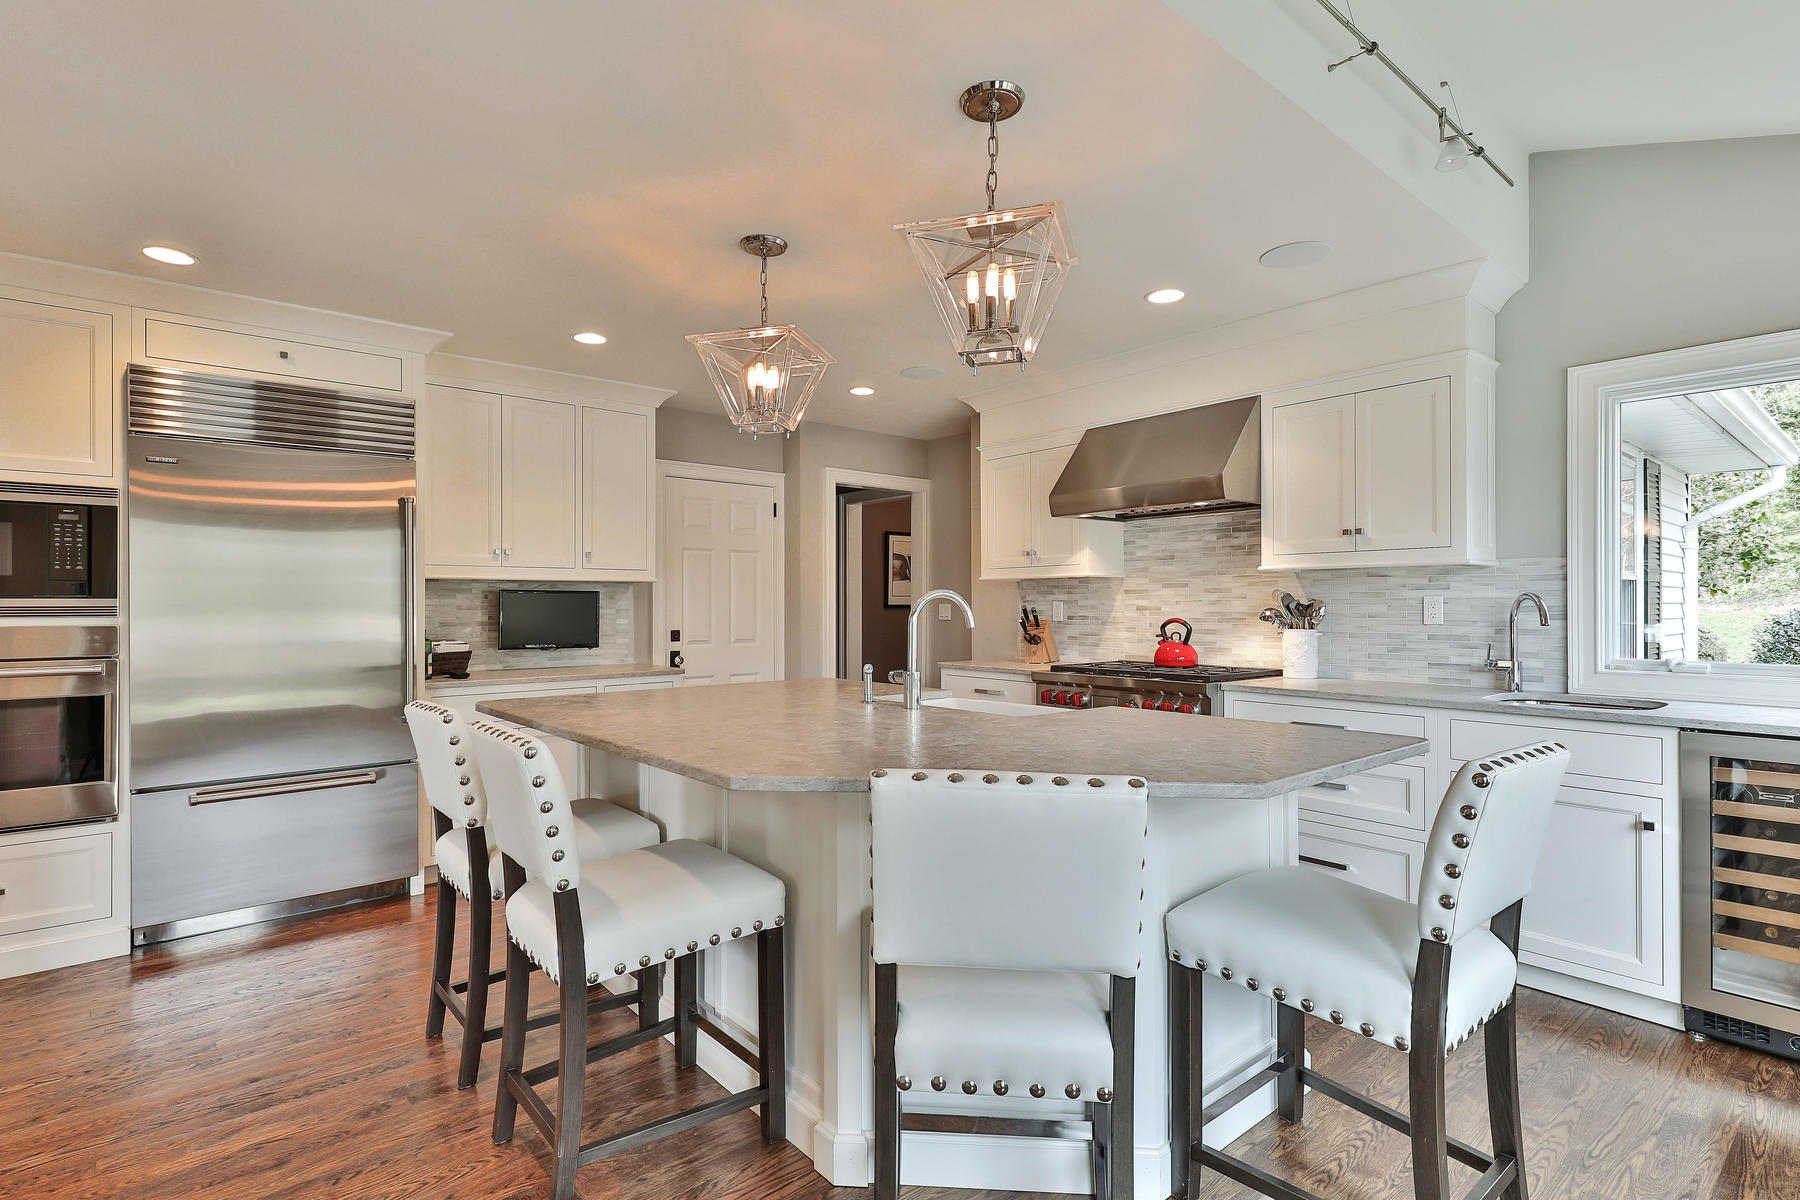 Single Family Home for Sale at 115 Ridge Road 115 Ridge Rd Rumson, New Jersey 07760 United States